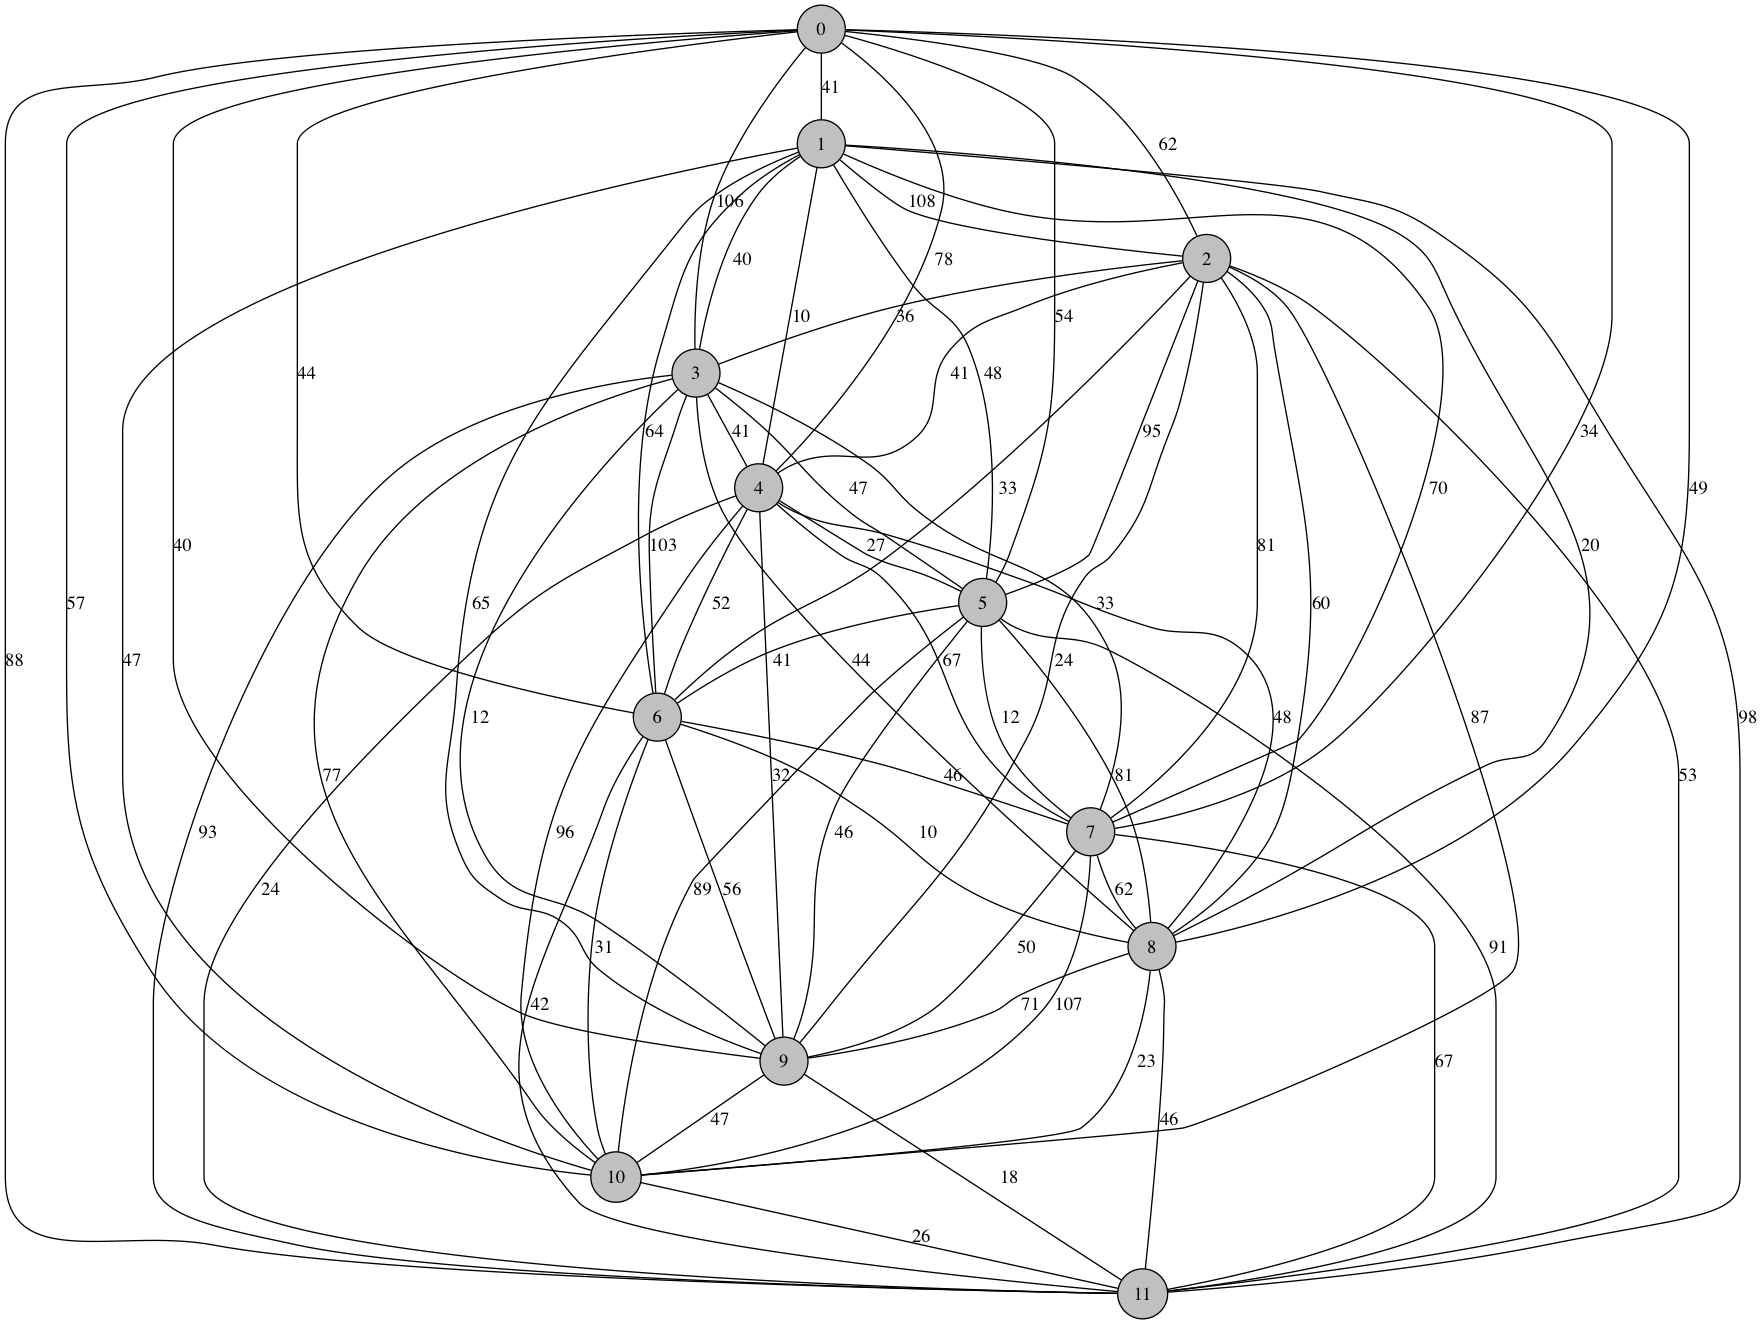 TSP graph with 12 nodes